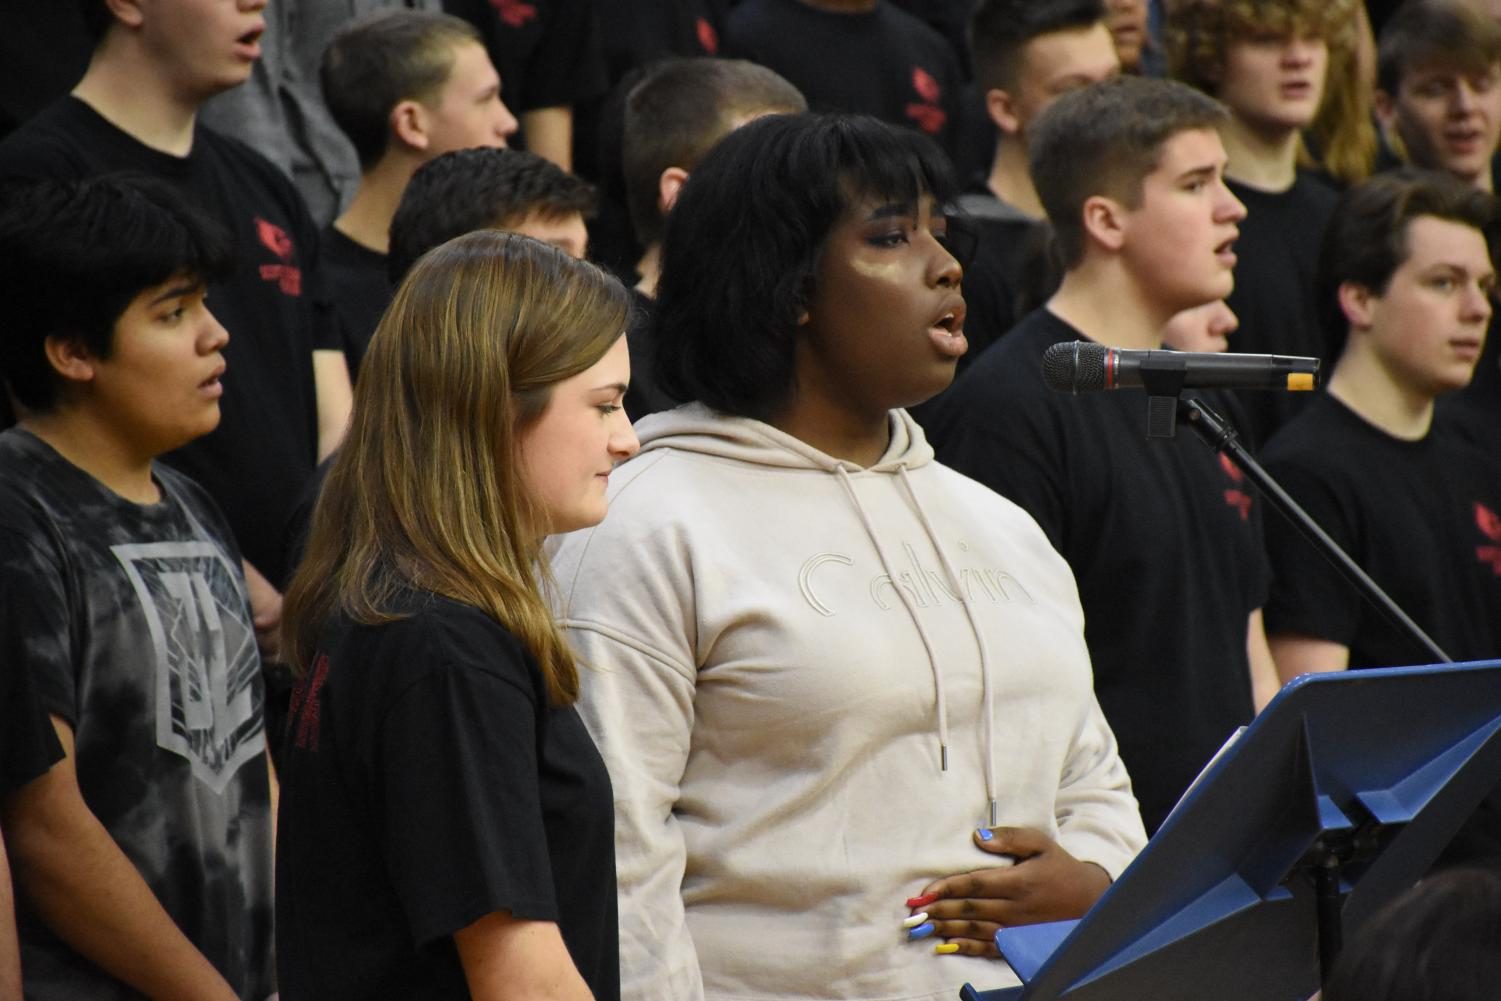 The+SCHS+choir+performed+two+selections+during+the+assembly.